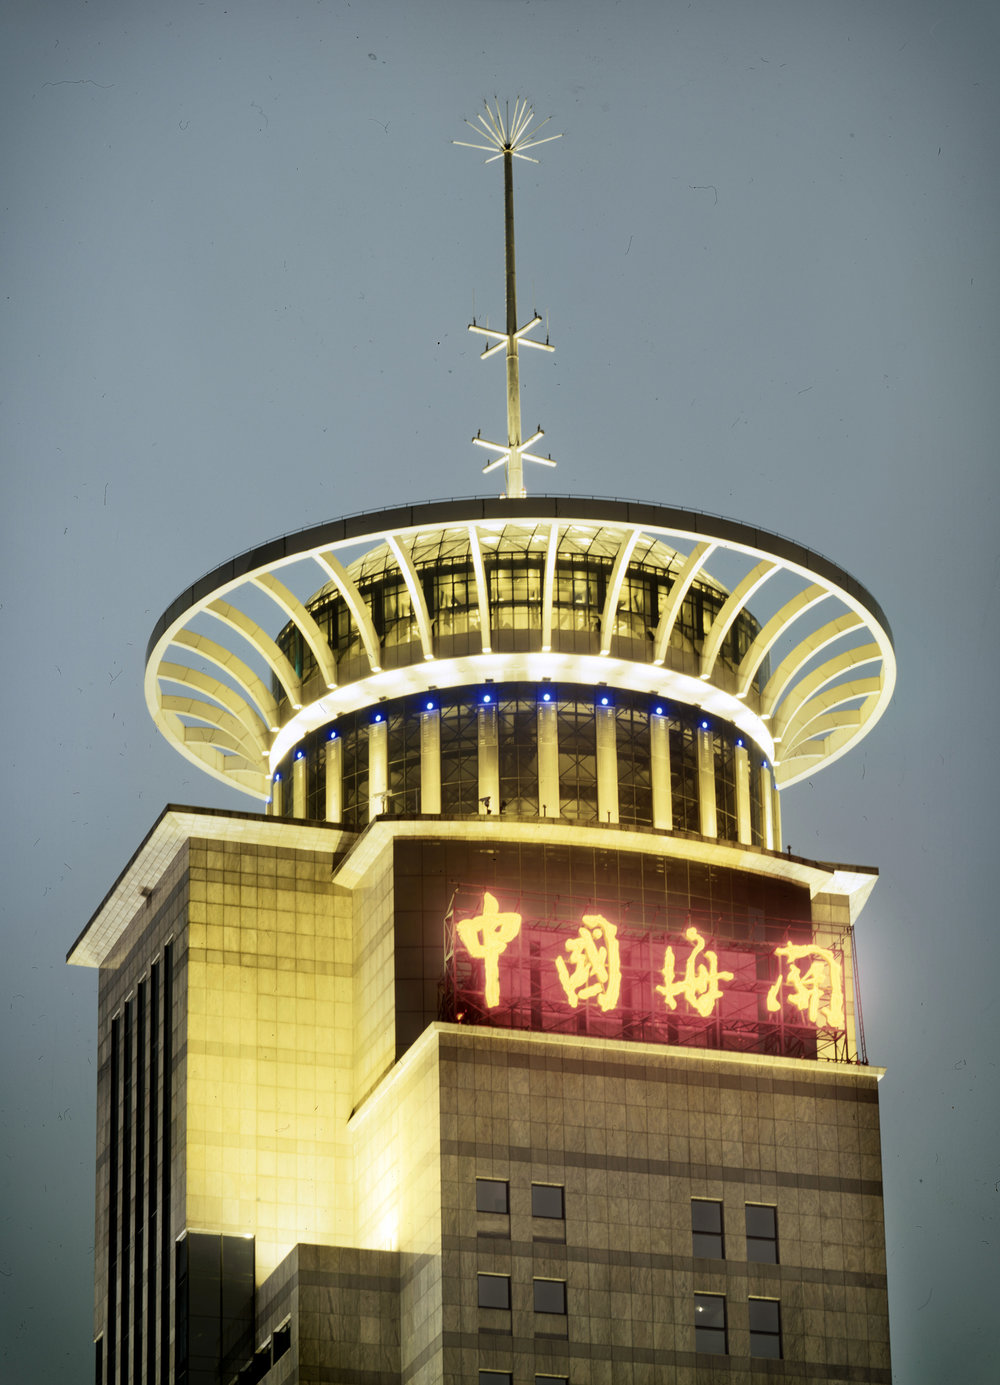 Pudong Customs Tower - Shanghai, China 2004